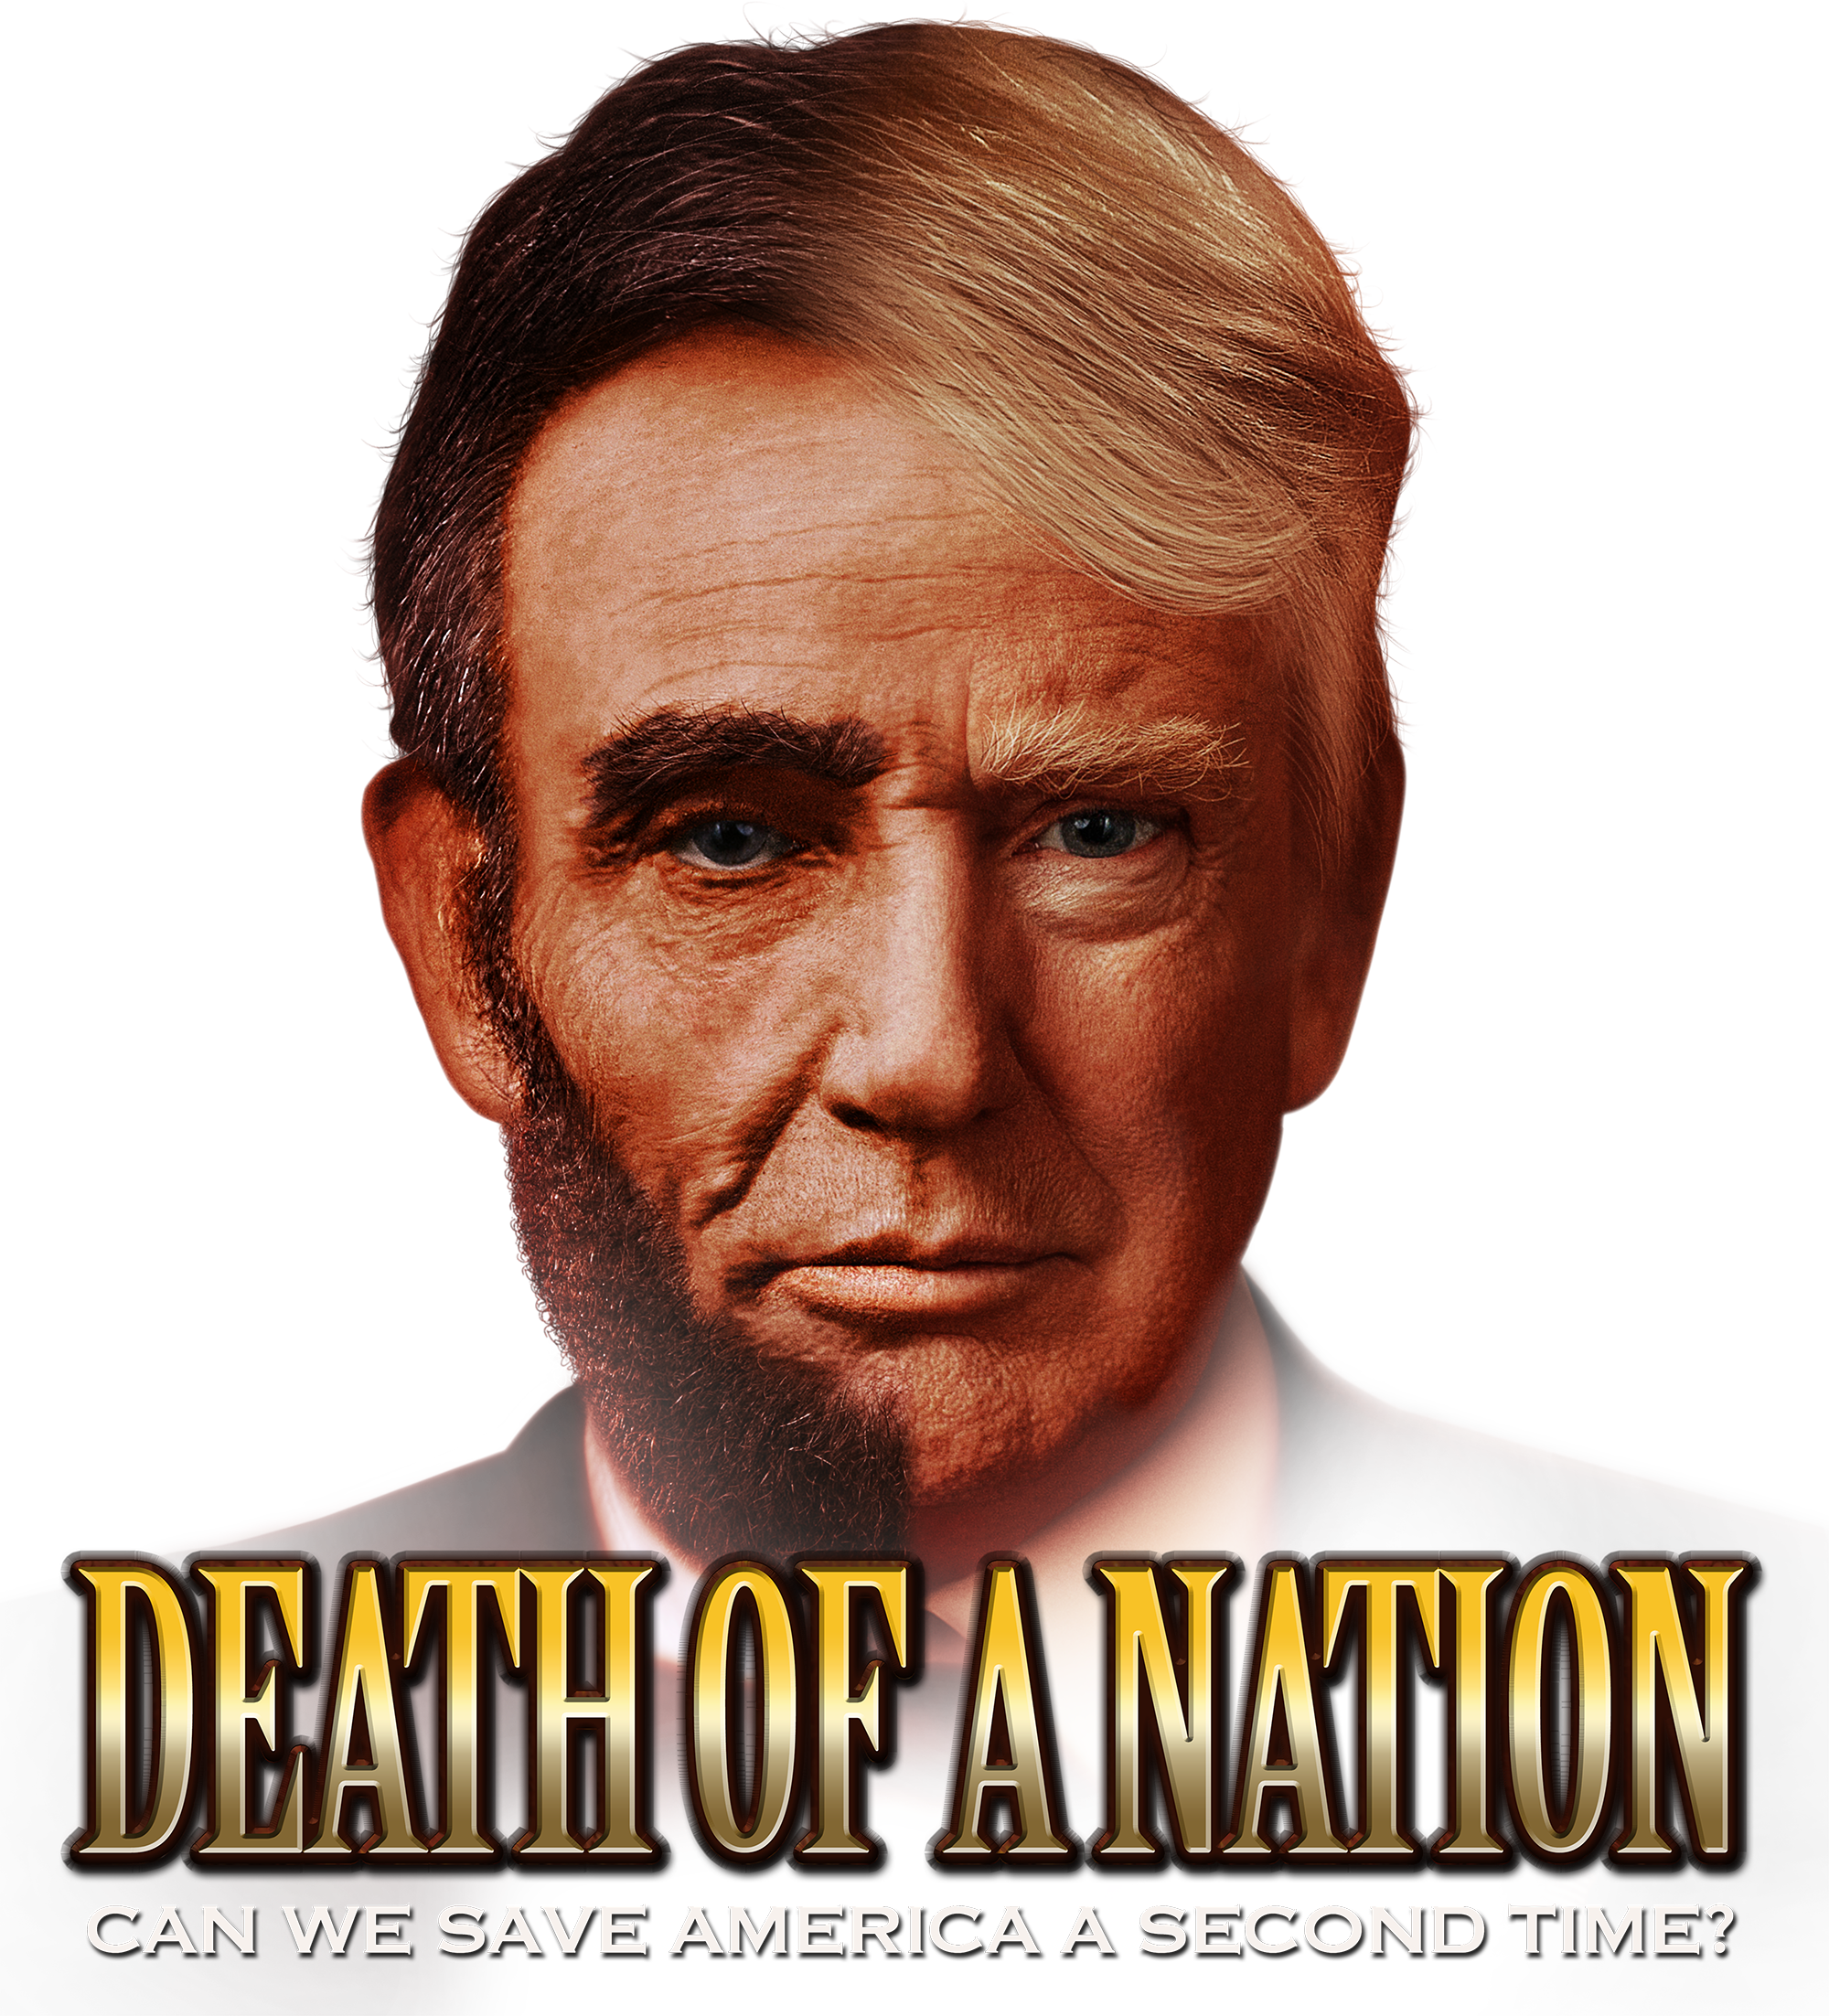 Death of a Nation: Can We Save America A Second Time?